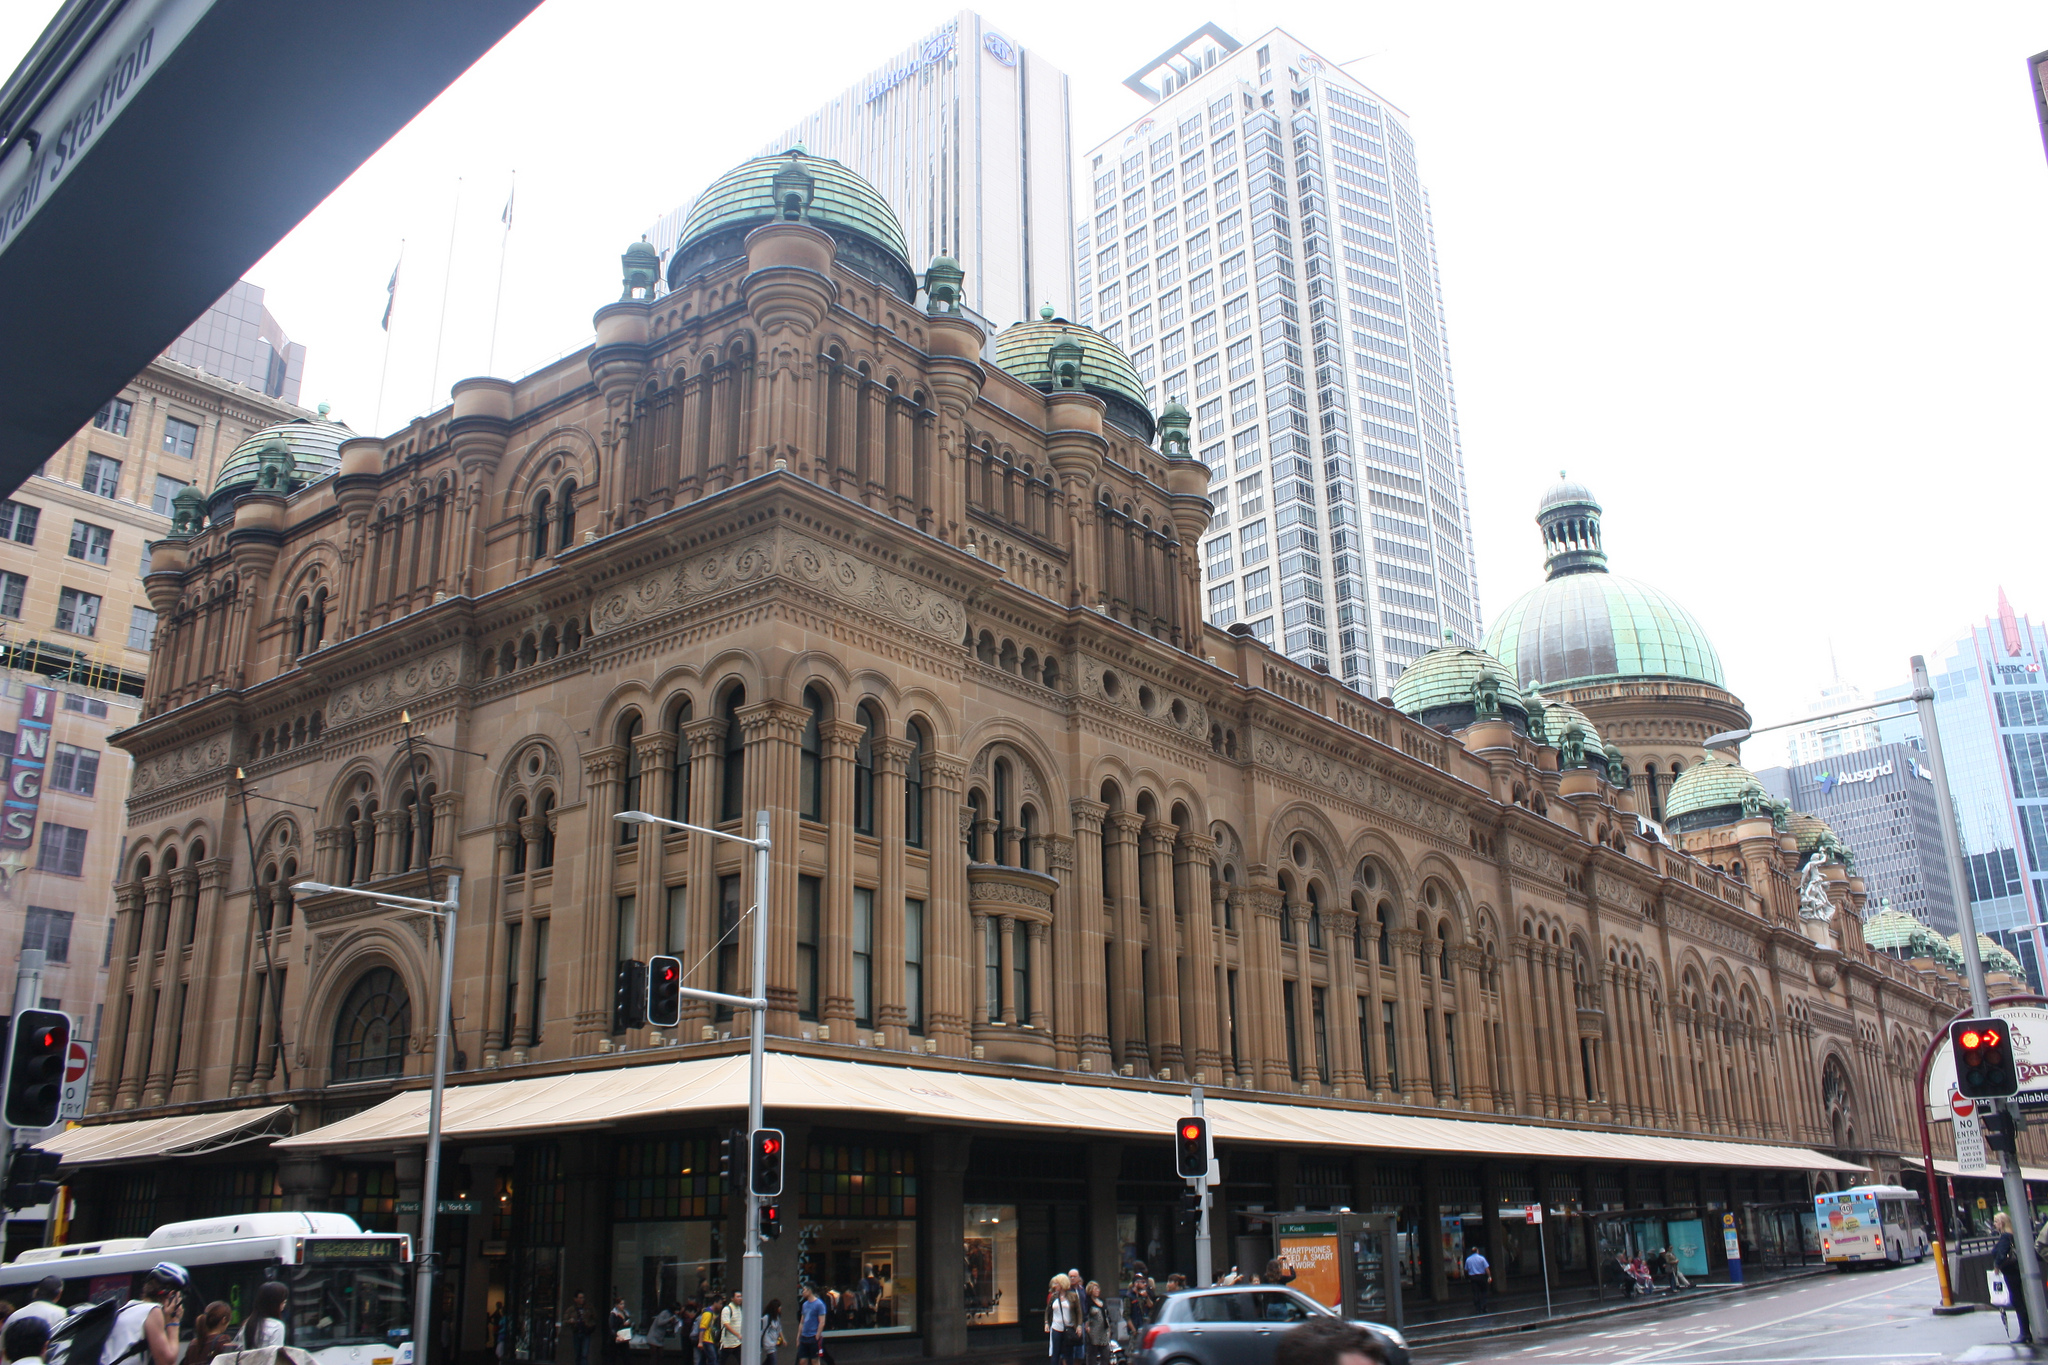 Queen Victoria Building Shopping Mall In Sydney